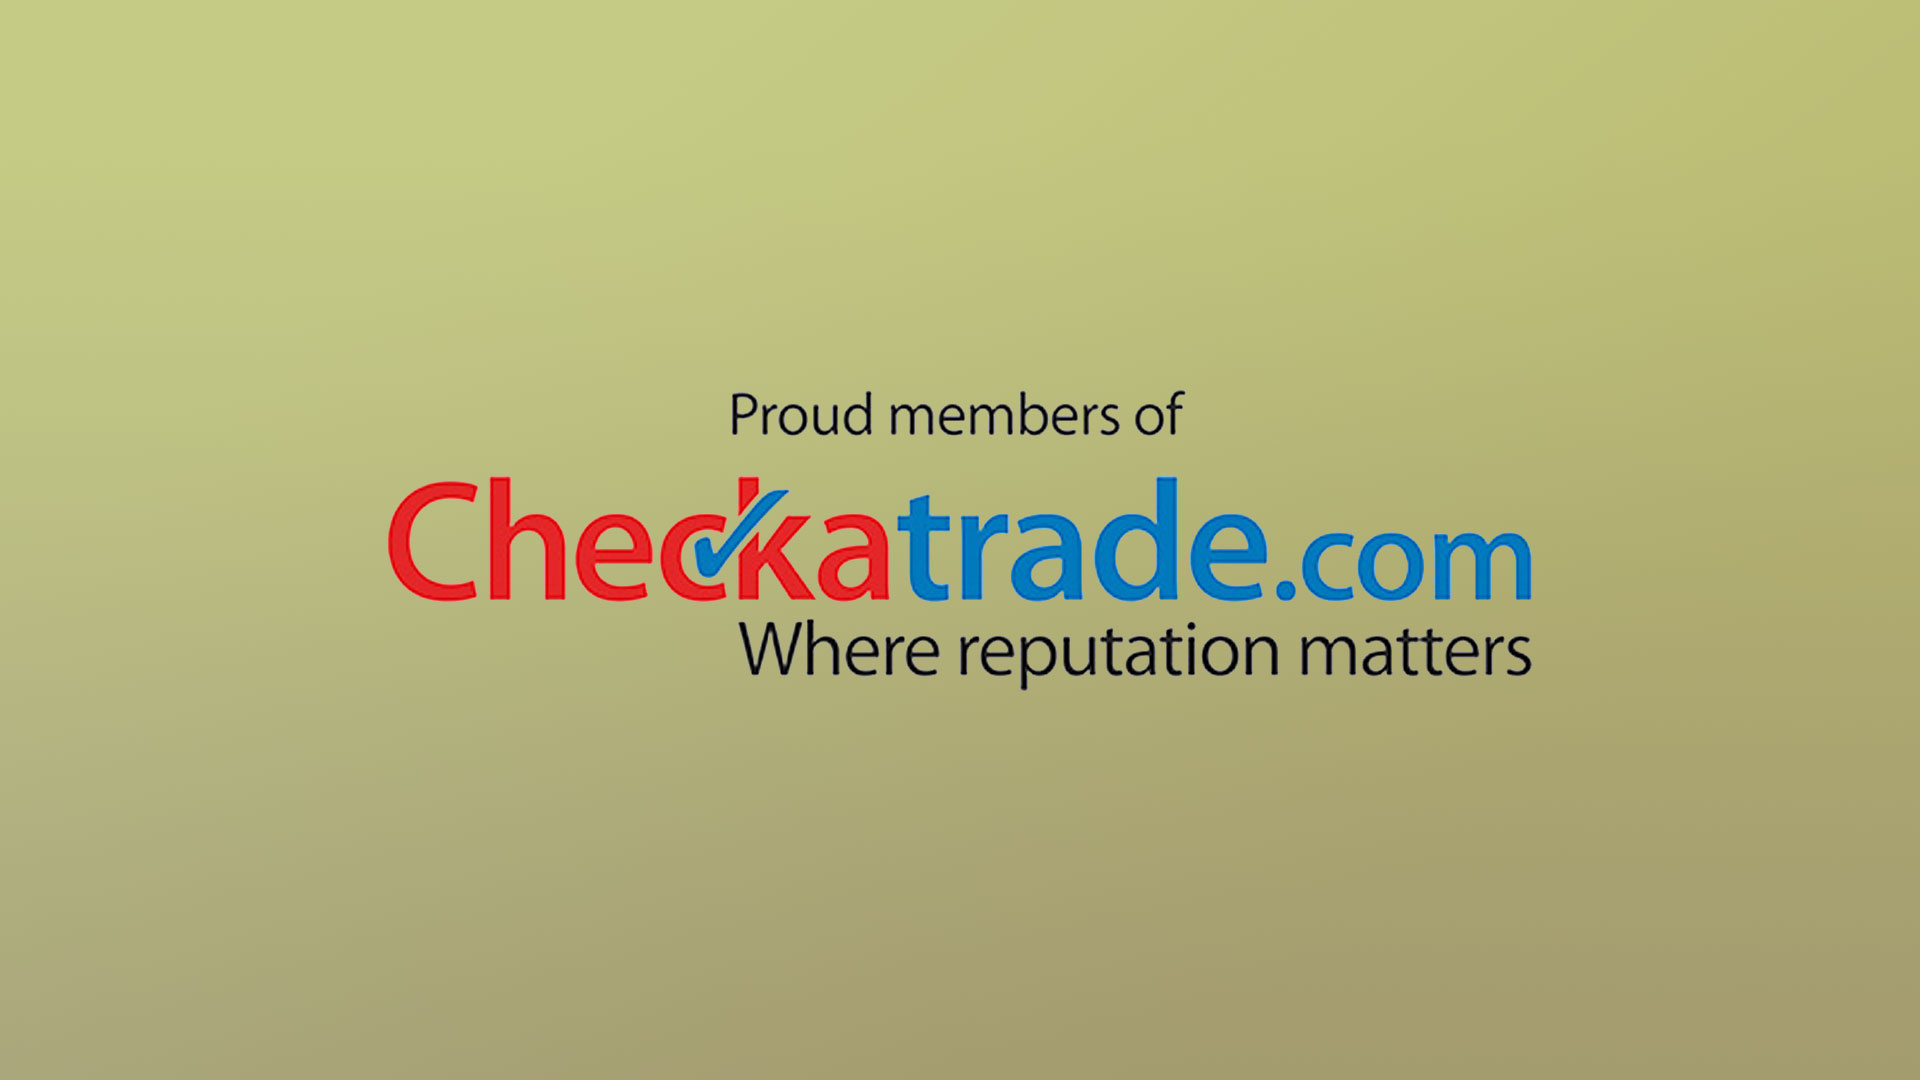 WordPress Checkatrade Plugin